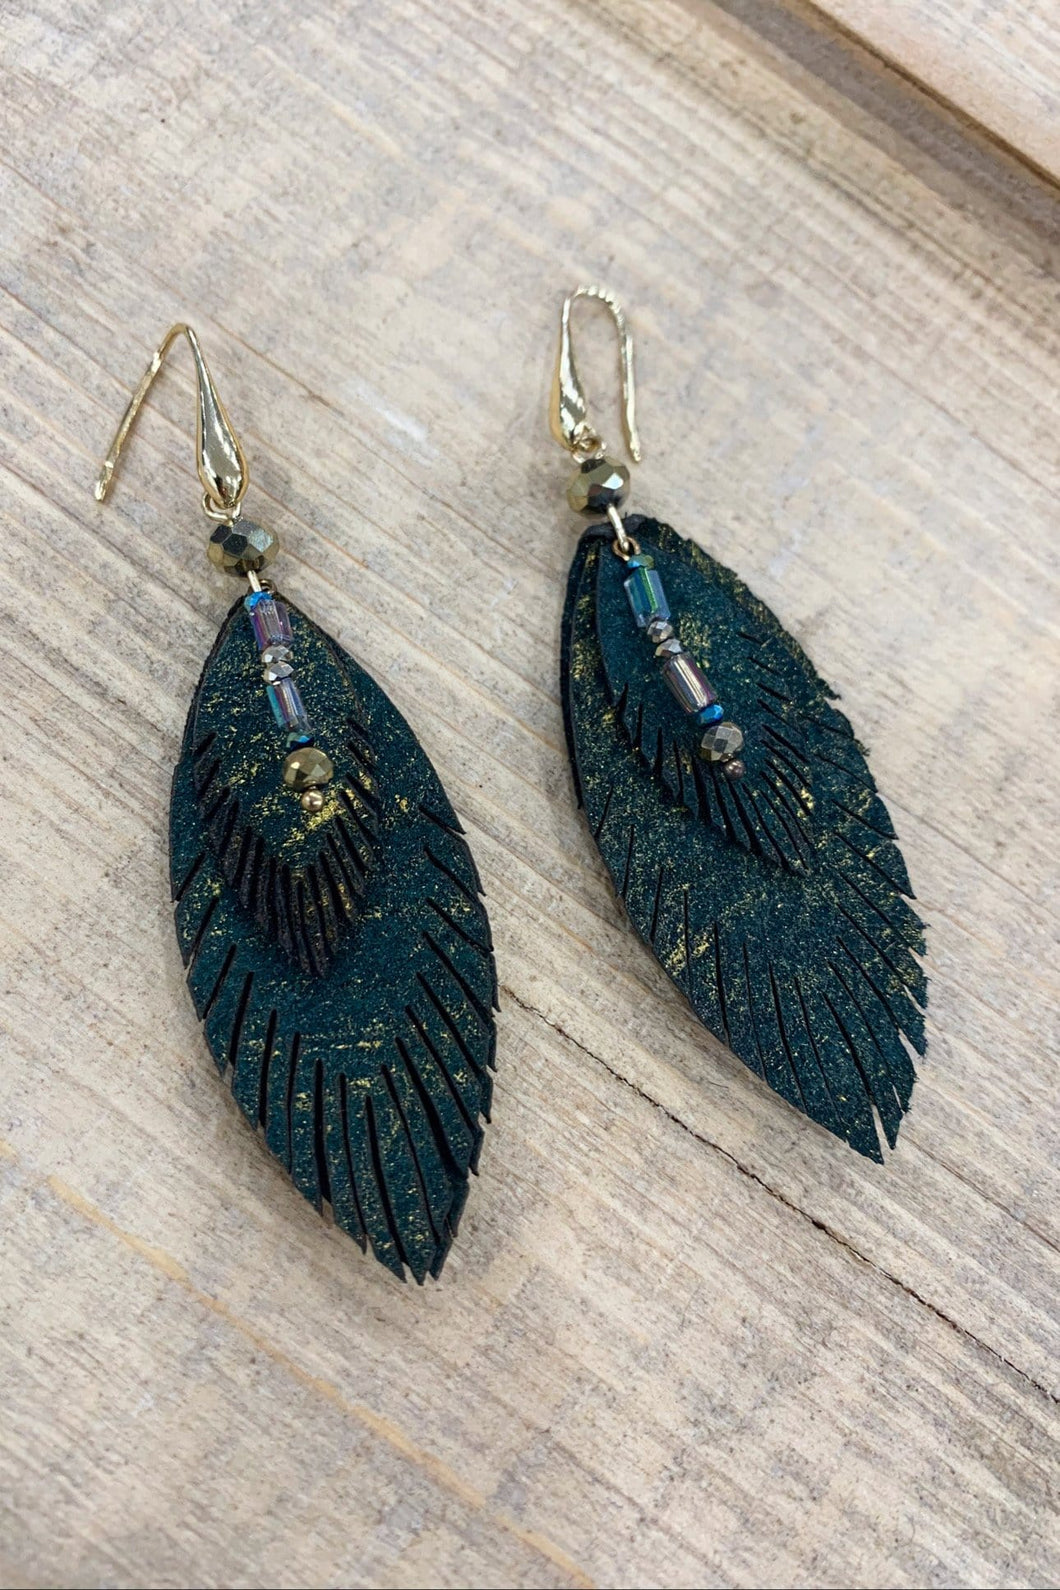 3 LAYER FEATHER DANGLE EARRING W/GOLD ACCENT - Infinity Raine